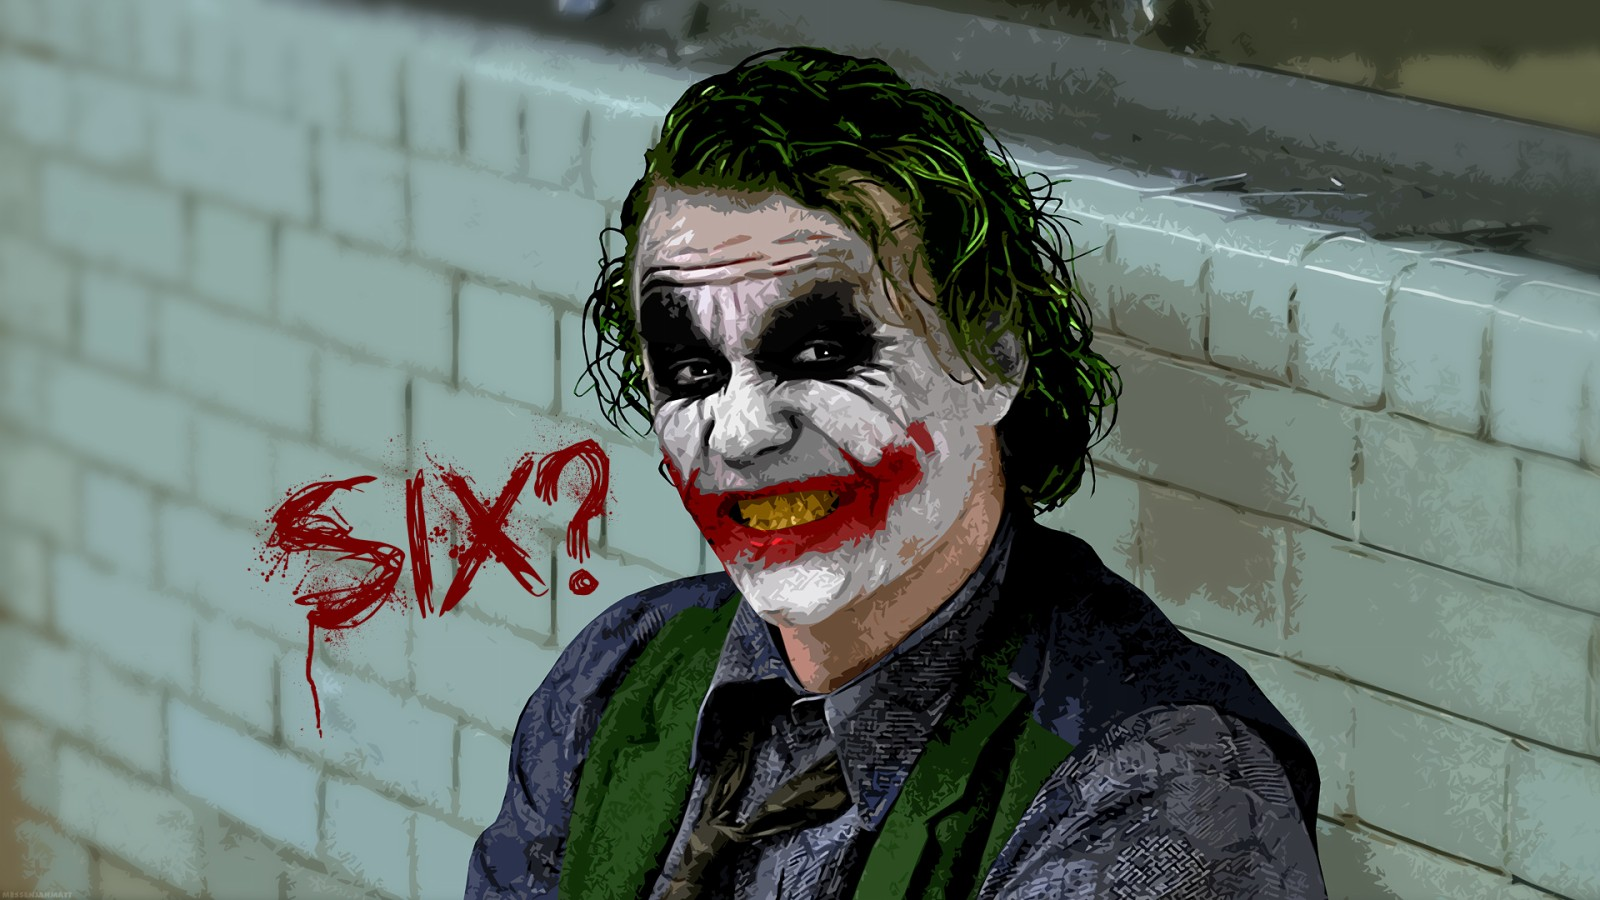 Joker Batman Dark Knight HD Wallpaper of Movie   hdwallpaper2013com 1600x900